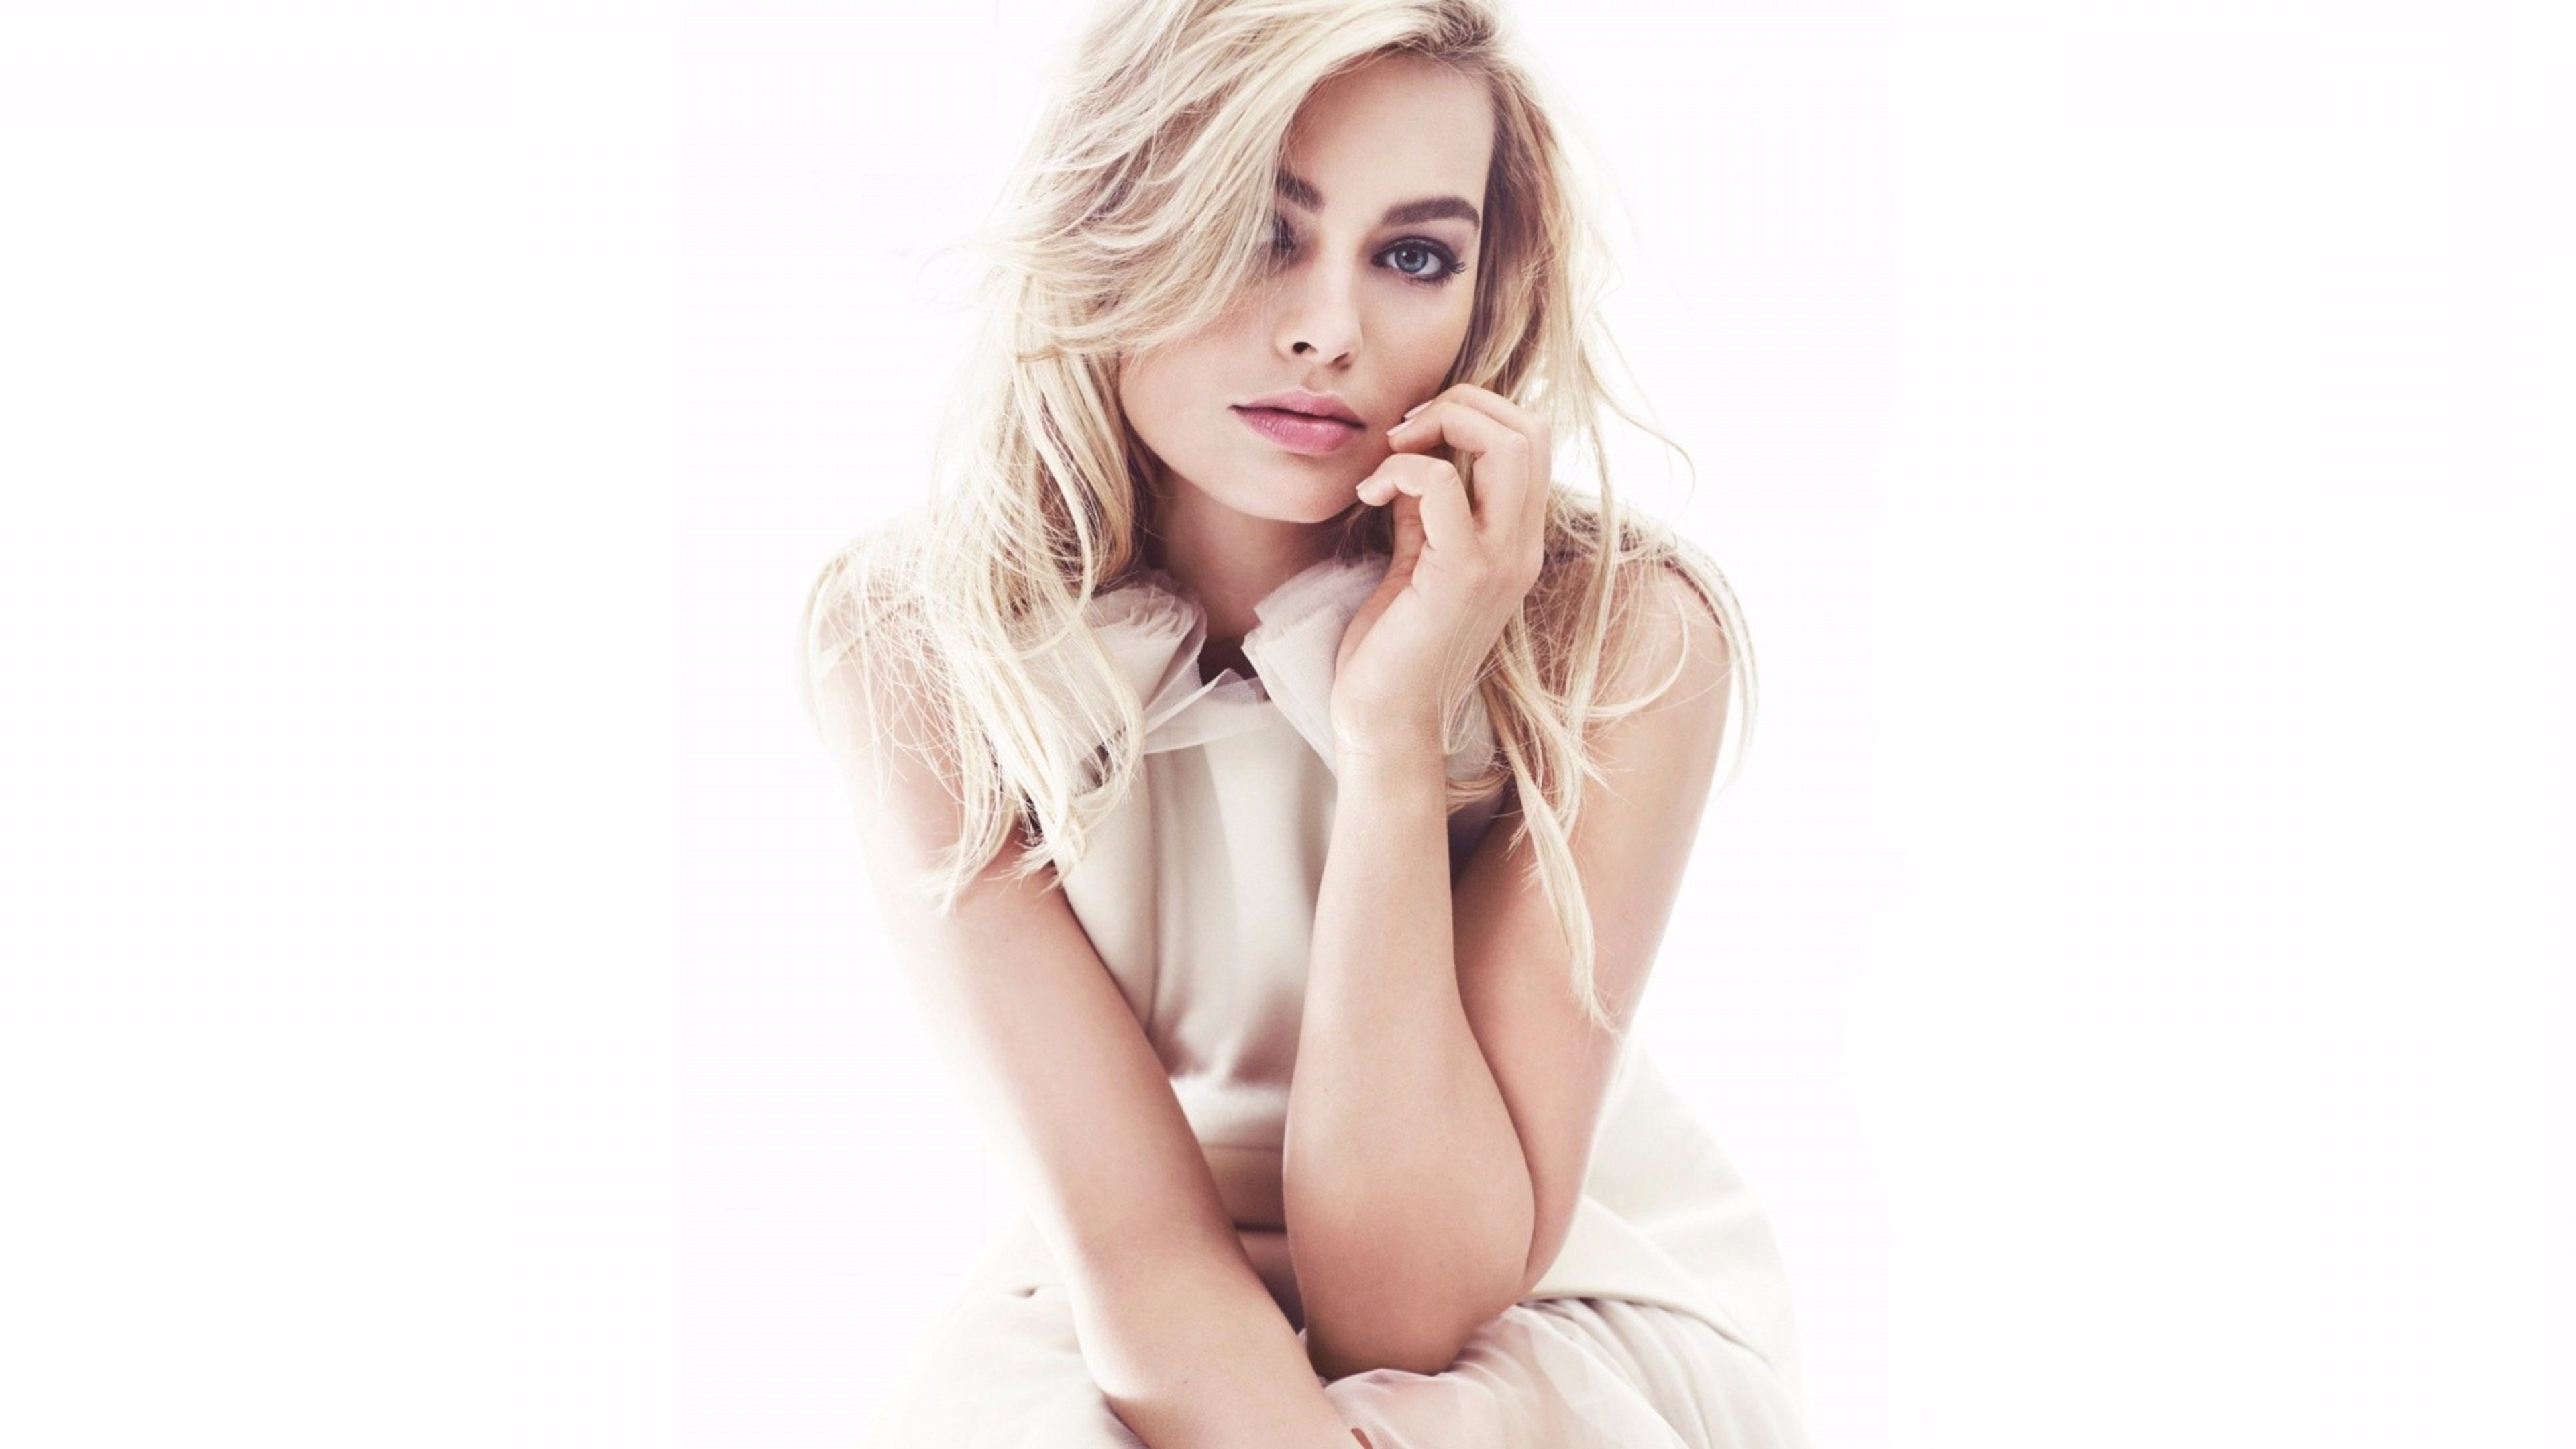 3a5e79ff94 Sexy Margot Robbie 4K Wallpapers. ««